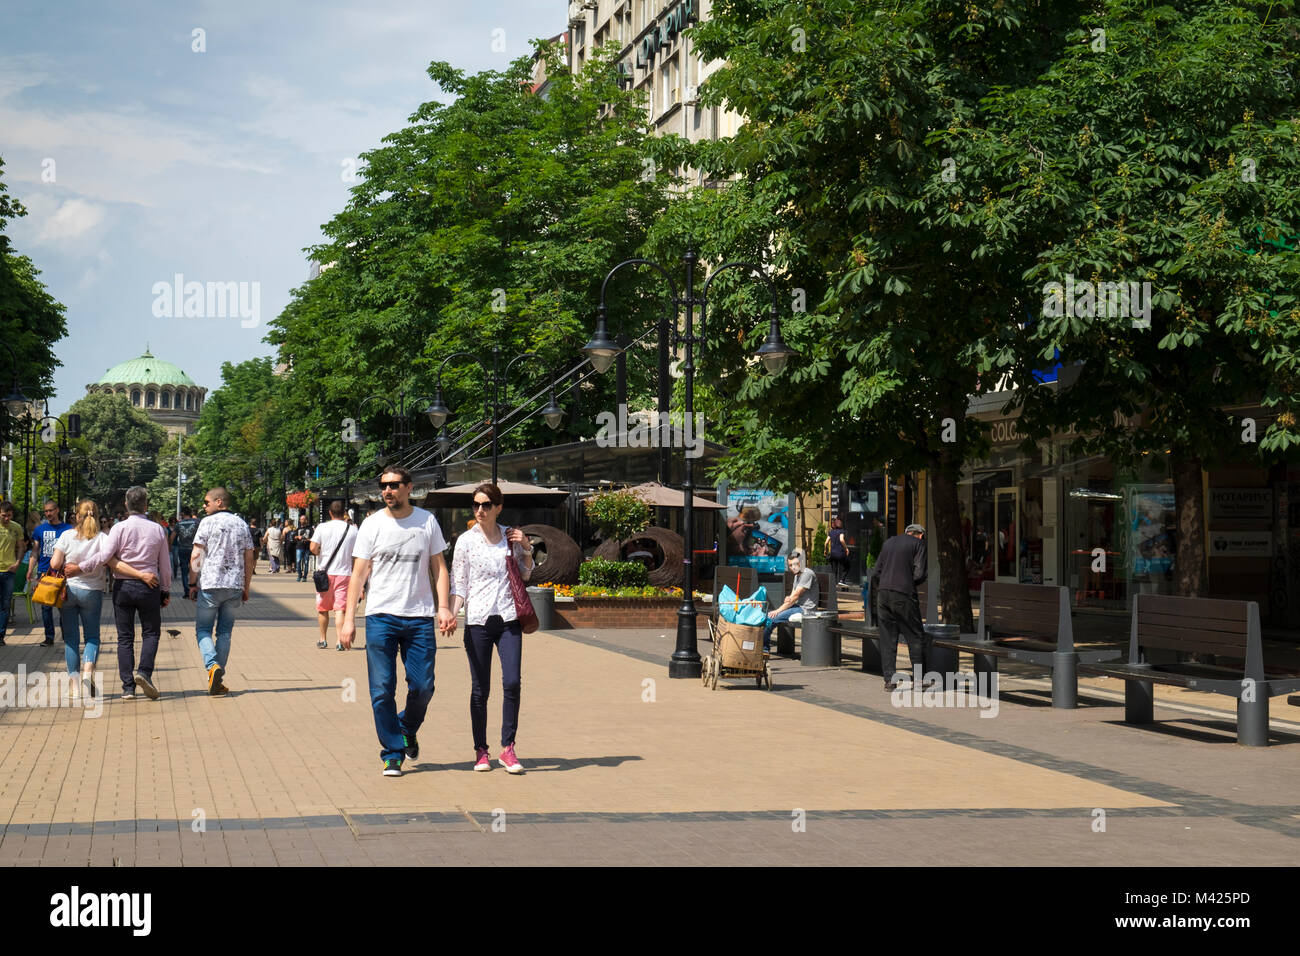 People on the fashionable Vitosha Boulevard, Sofia, Bulgaria, Europe - Stock Image